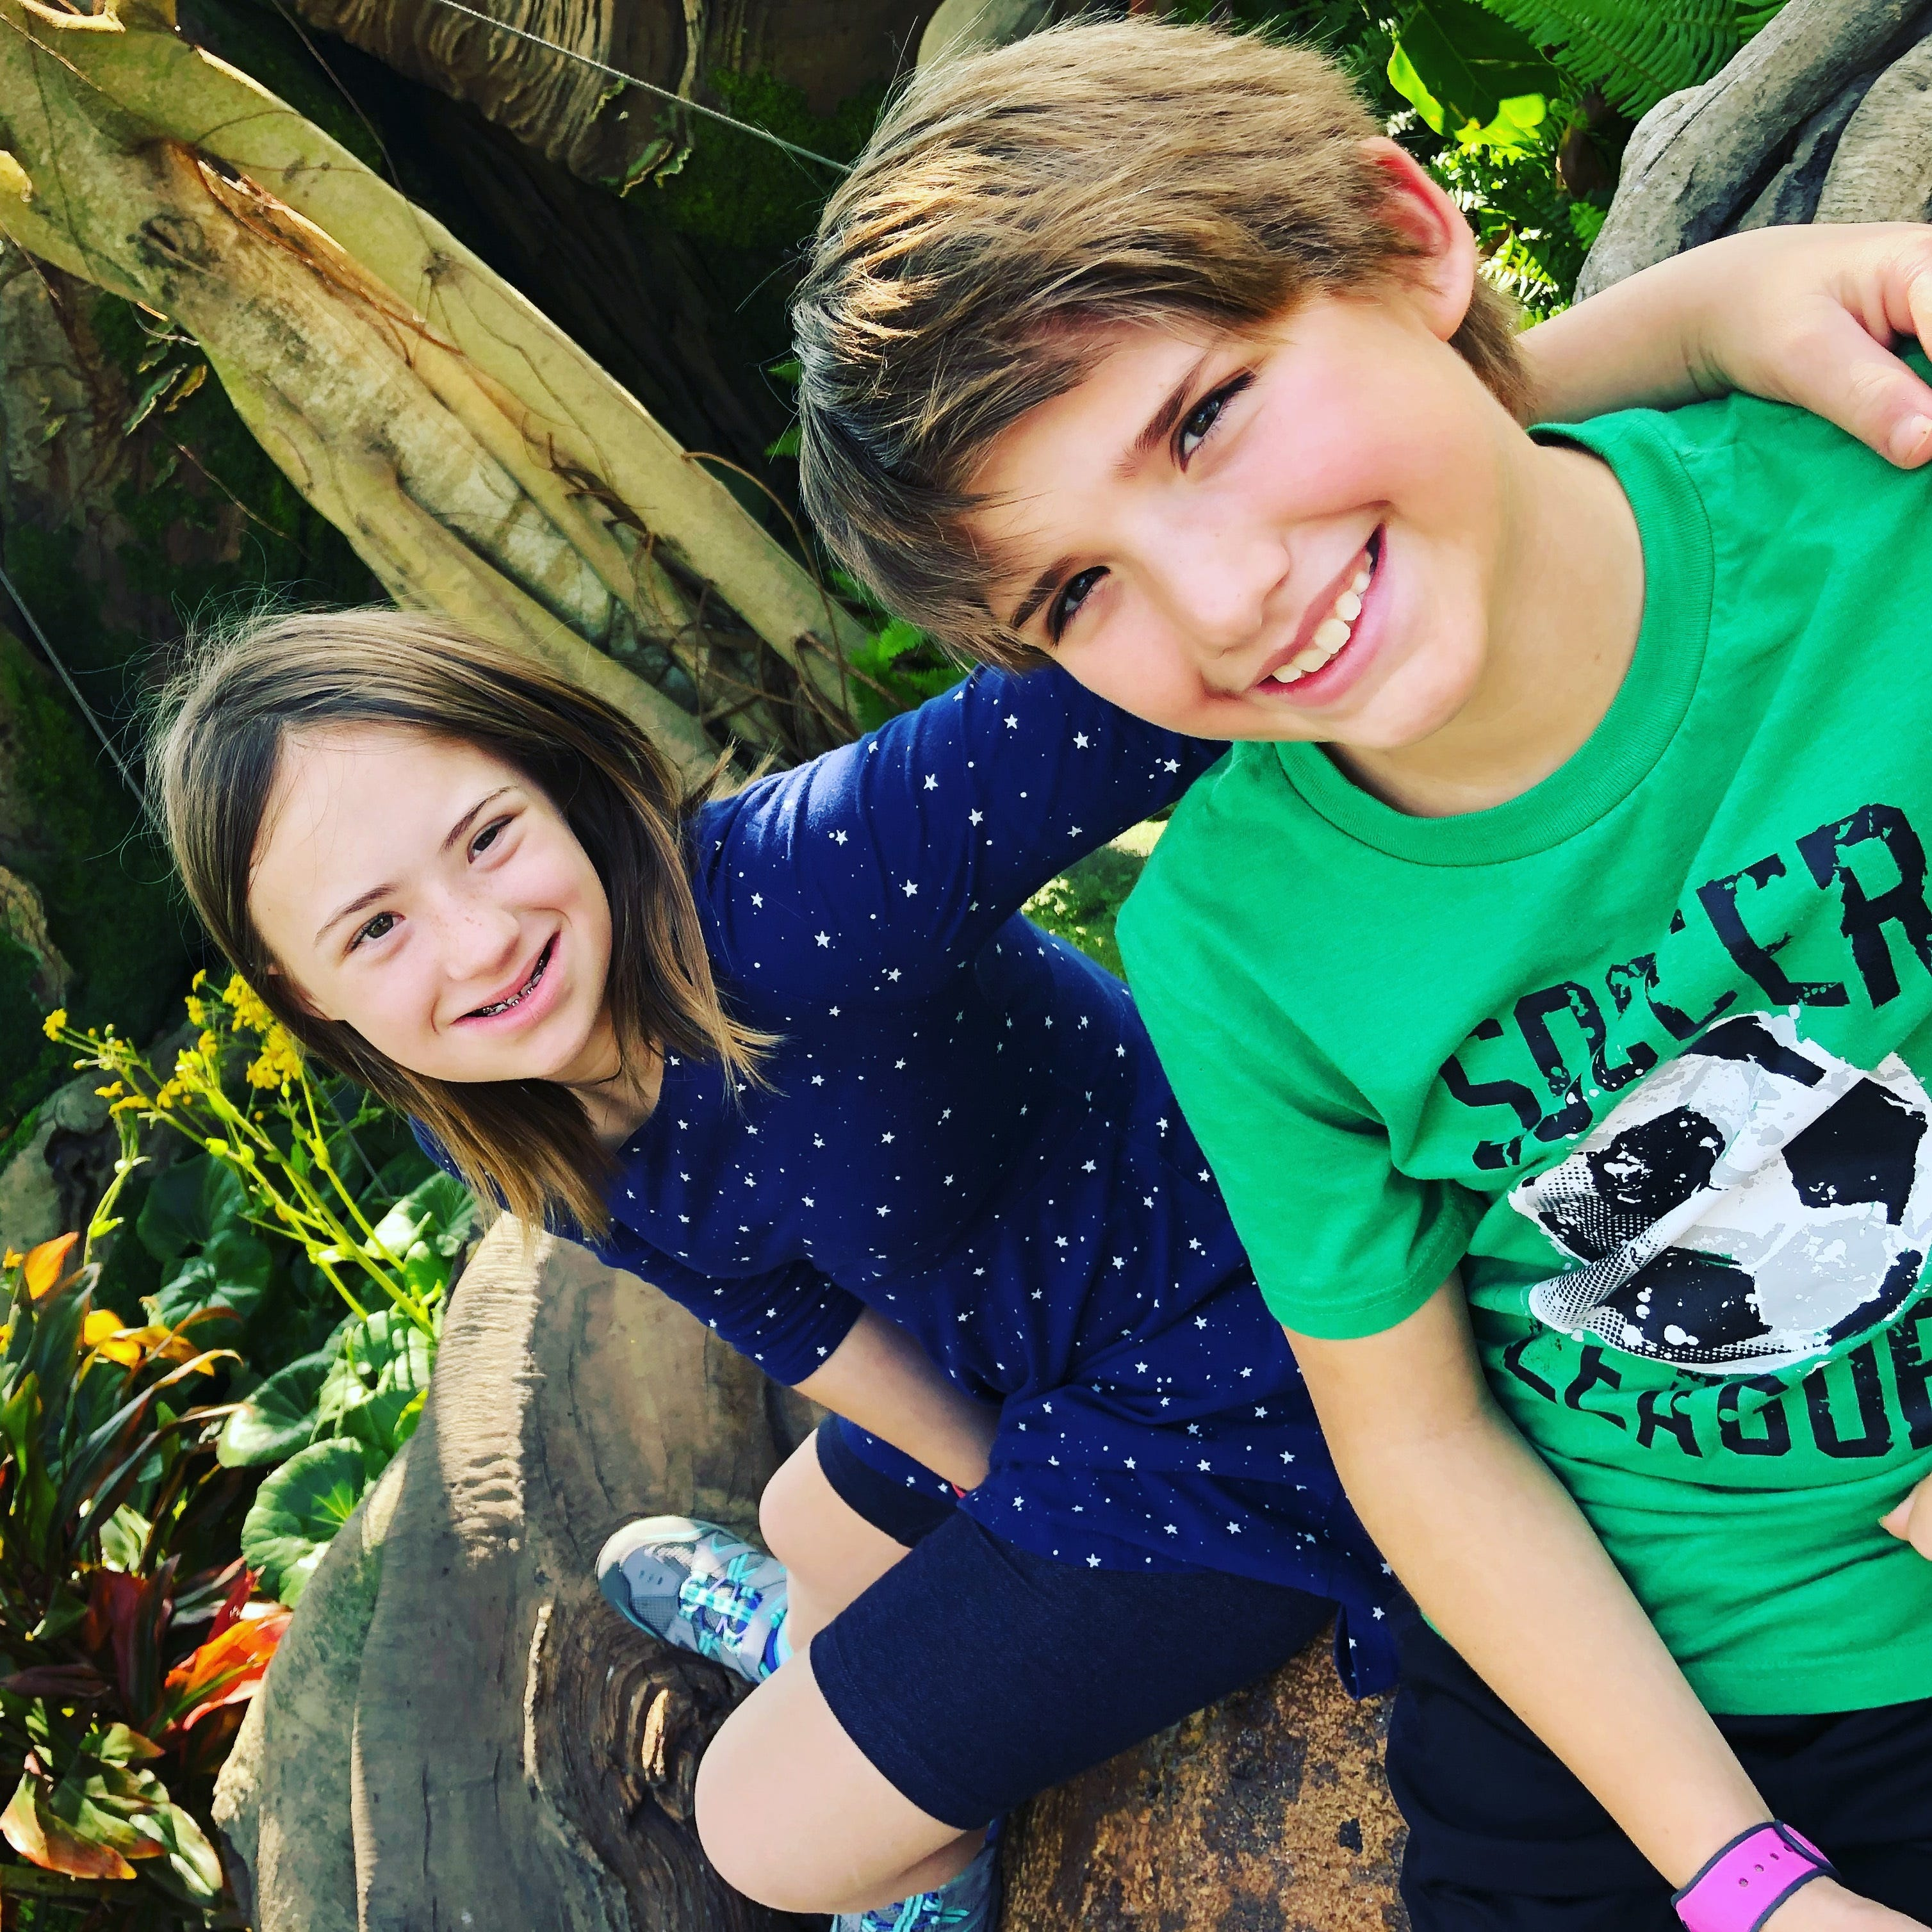 Family vacations: Planning a trip for kids with special needs